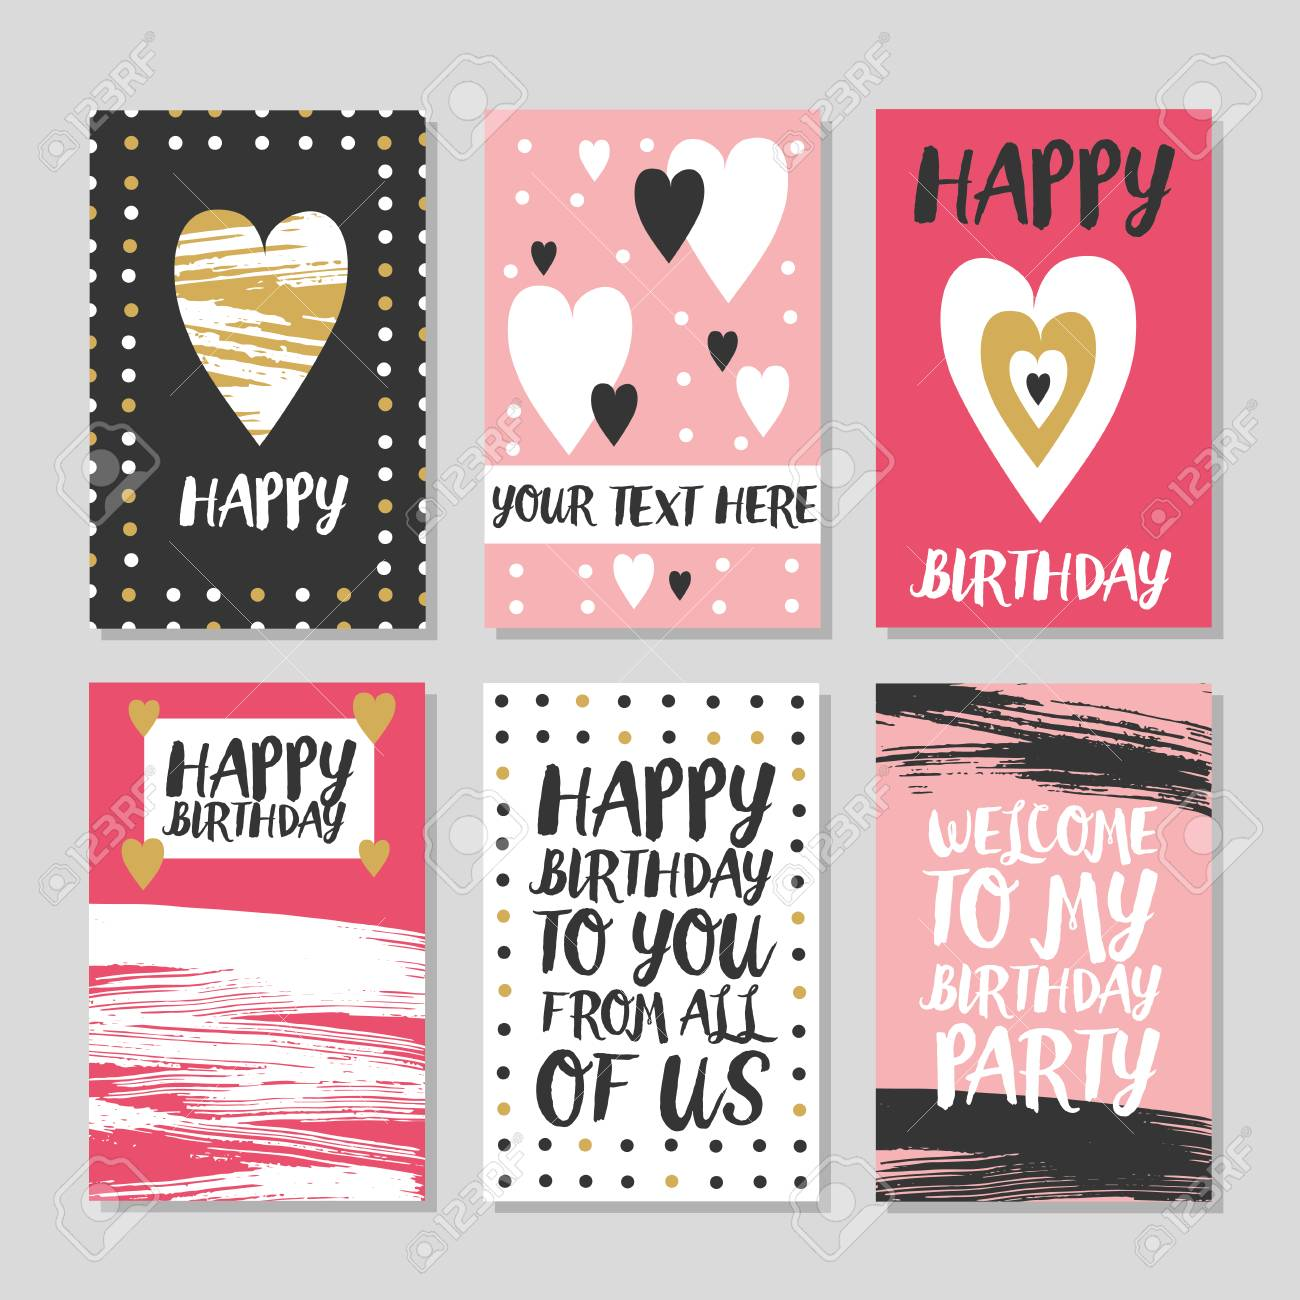 Set Of 6 Cute Creative Cards Templates With Happy Birthday Theme Design Hand Drawn Card